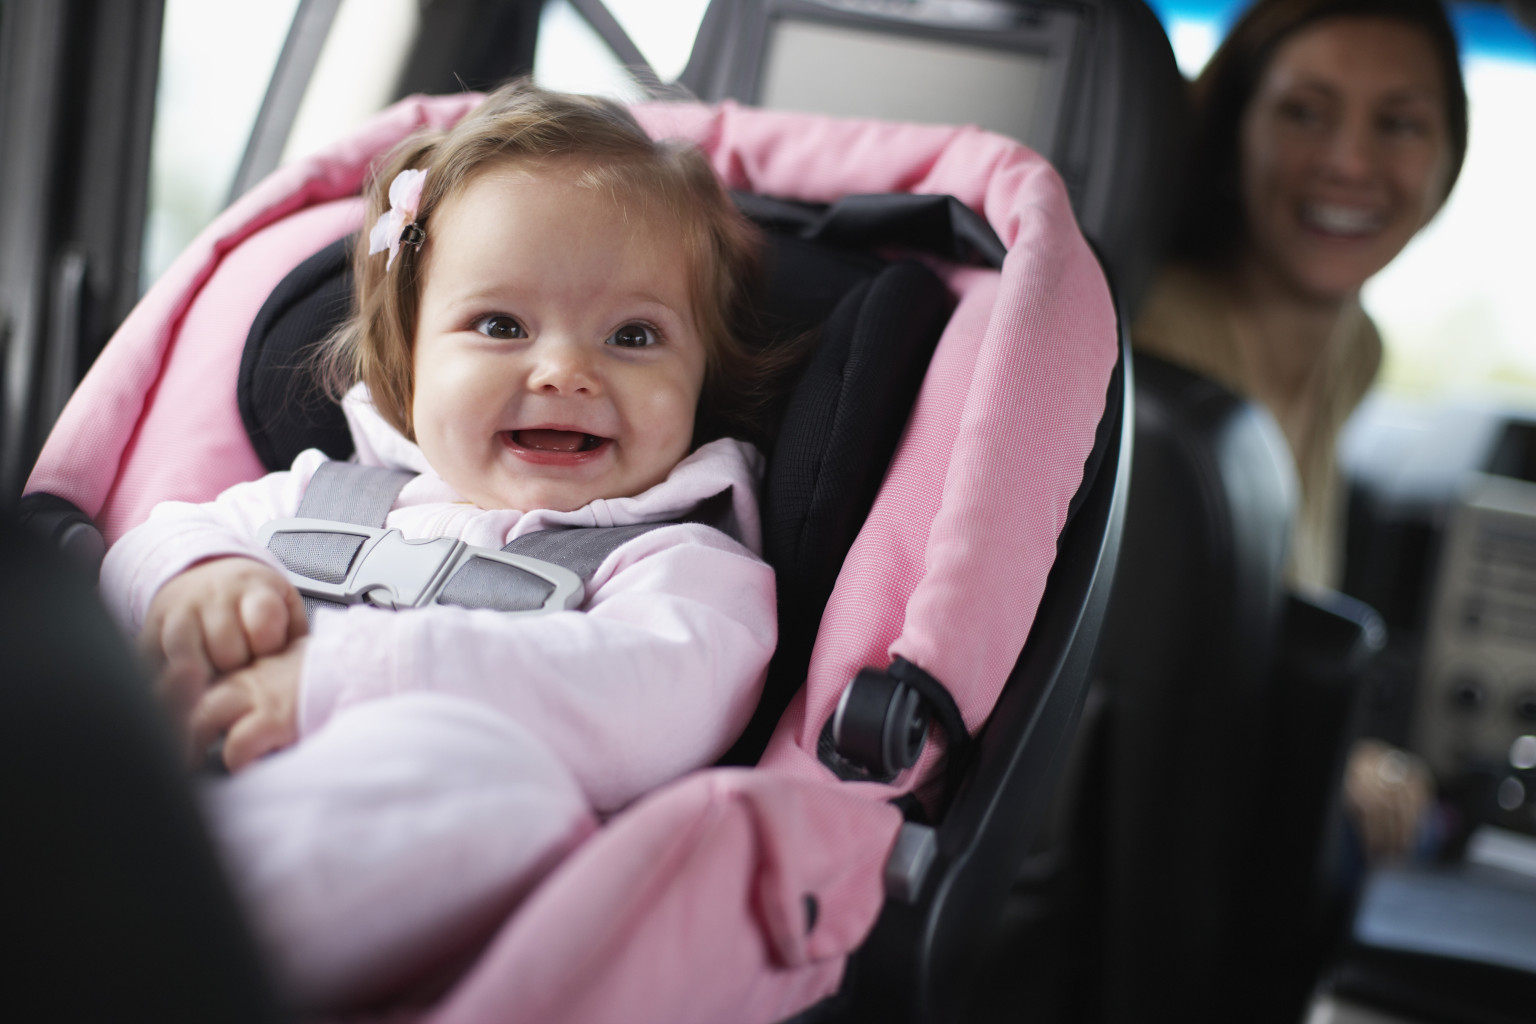 Transportation Services for Kids | Airport Limo Car Seat